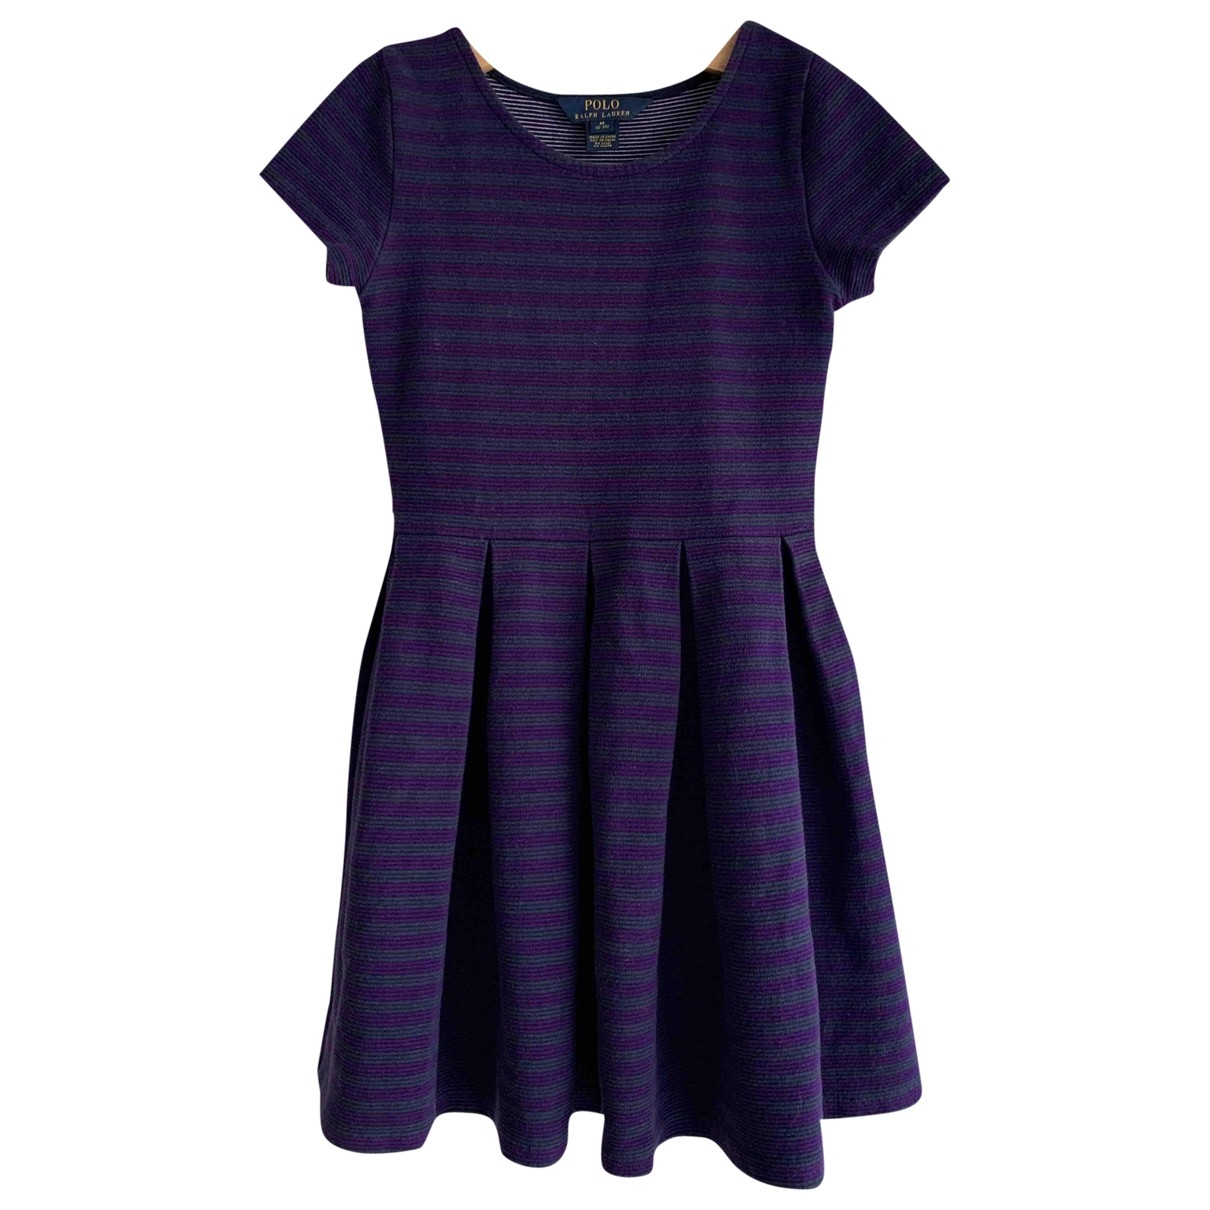 Polo Ralph Lauren \N Blue Cotton dress for Kids 8 years - up to 128cm FR